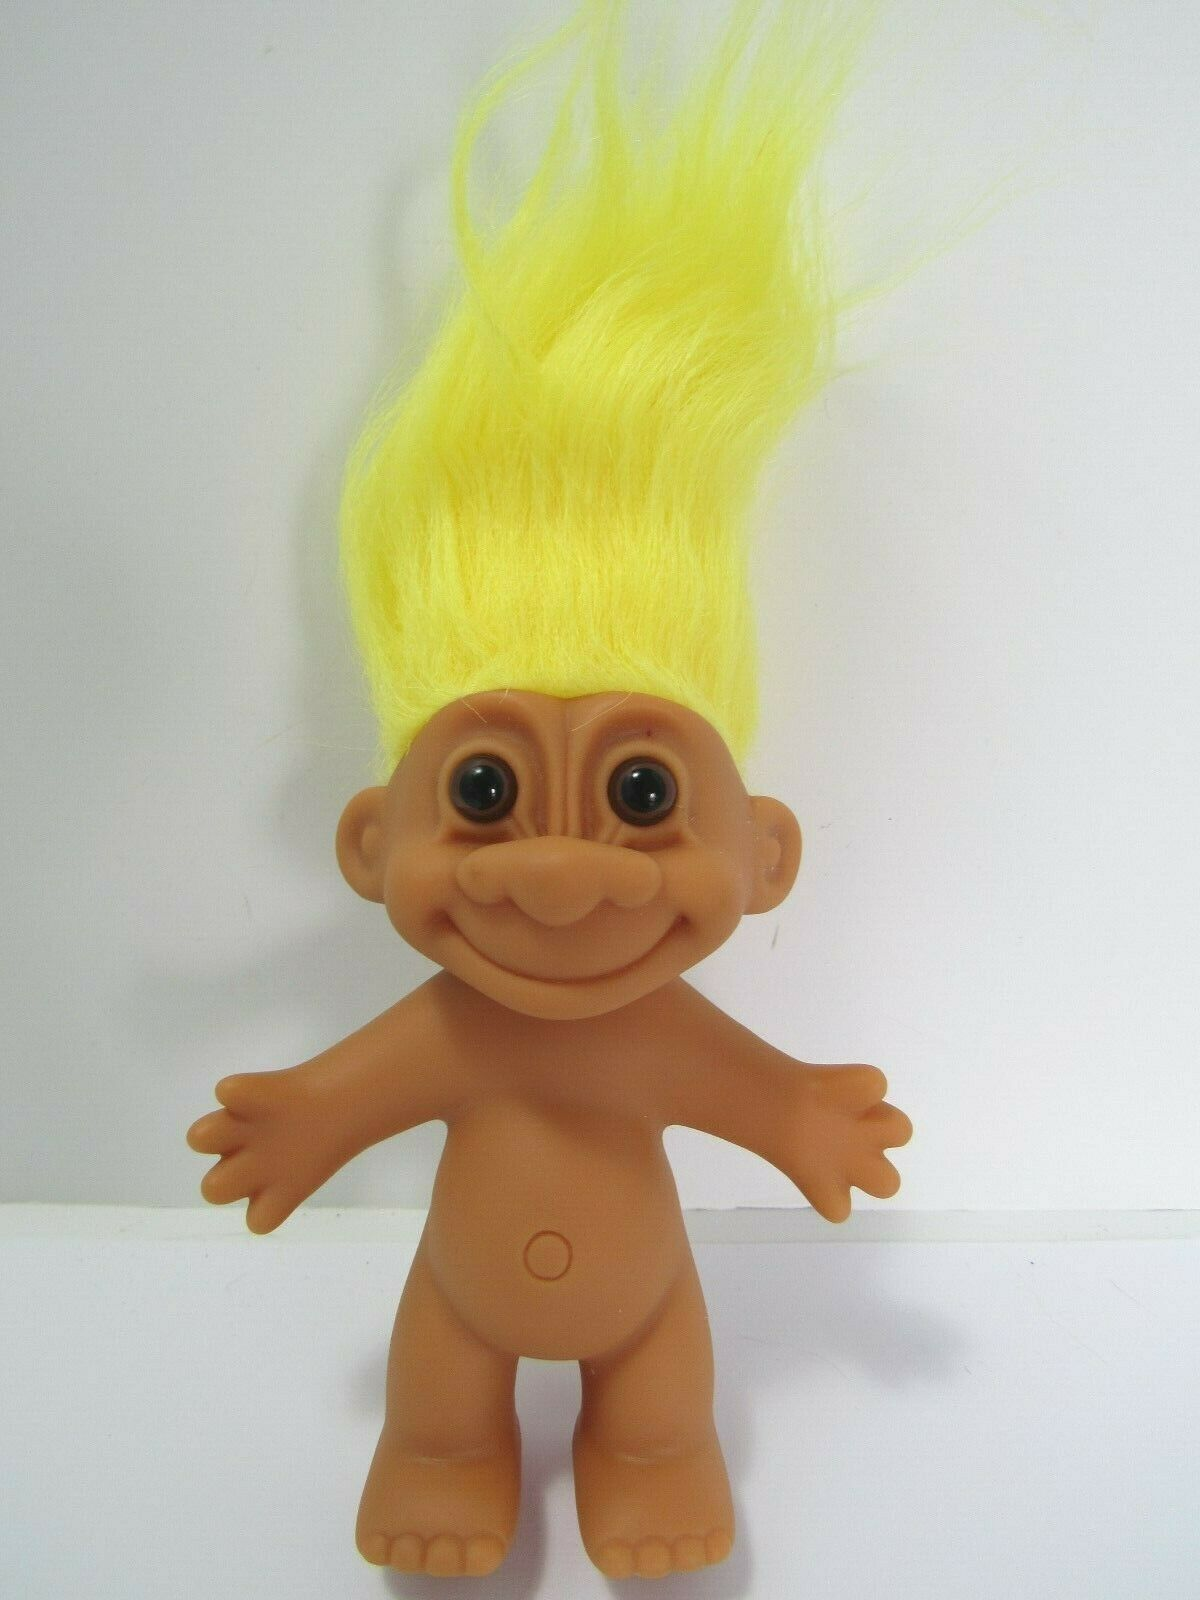 Vintage Naked Bunny Troll Doll by Russ